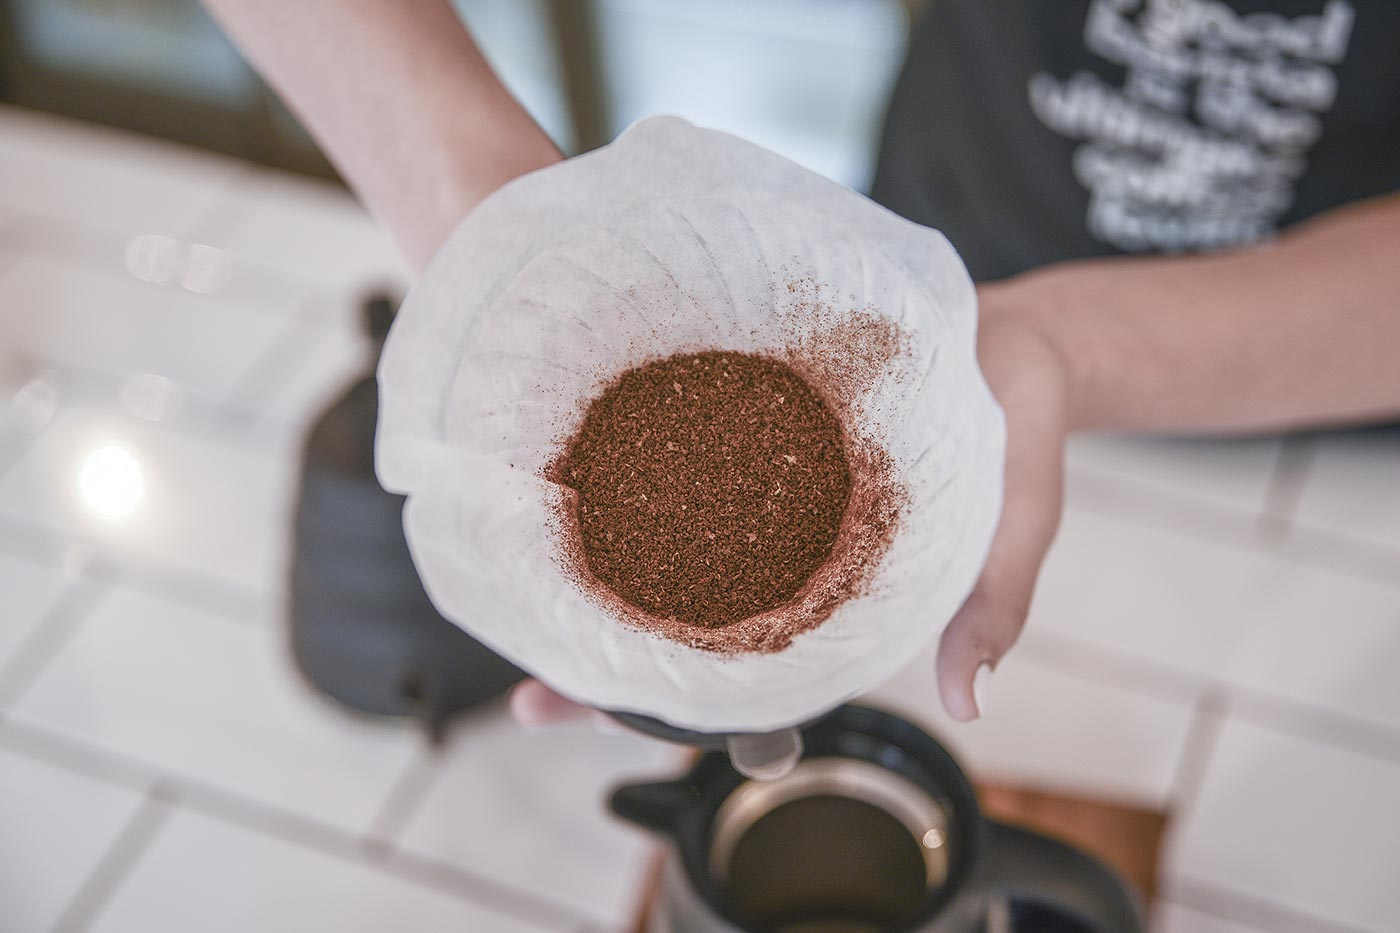 Coffee in a chemex filter from a manual coffee grinder